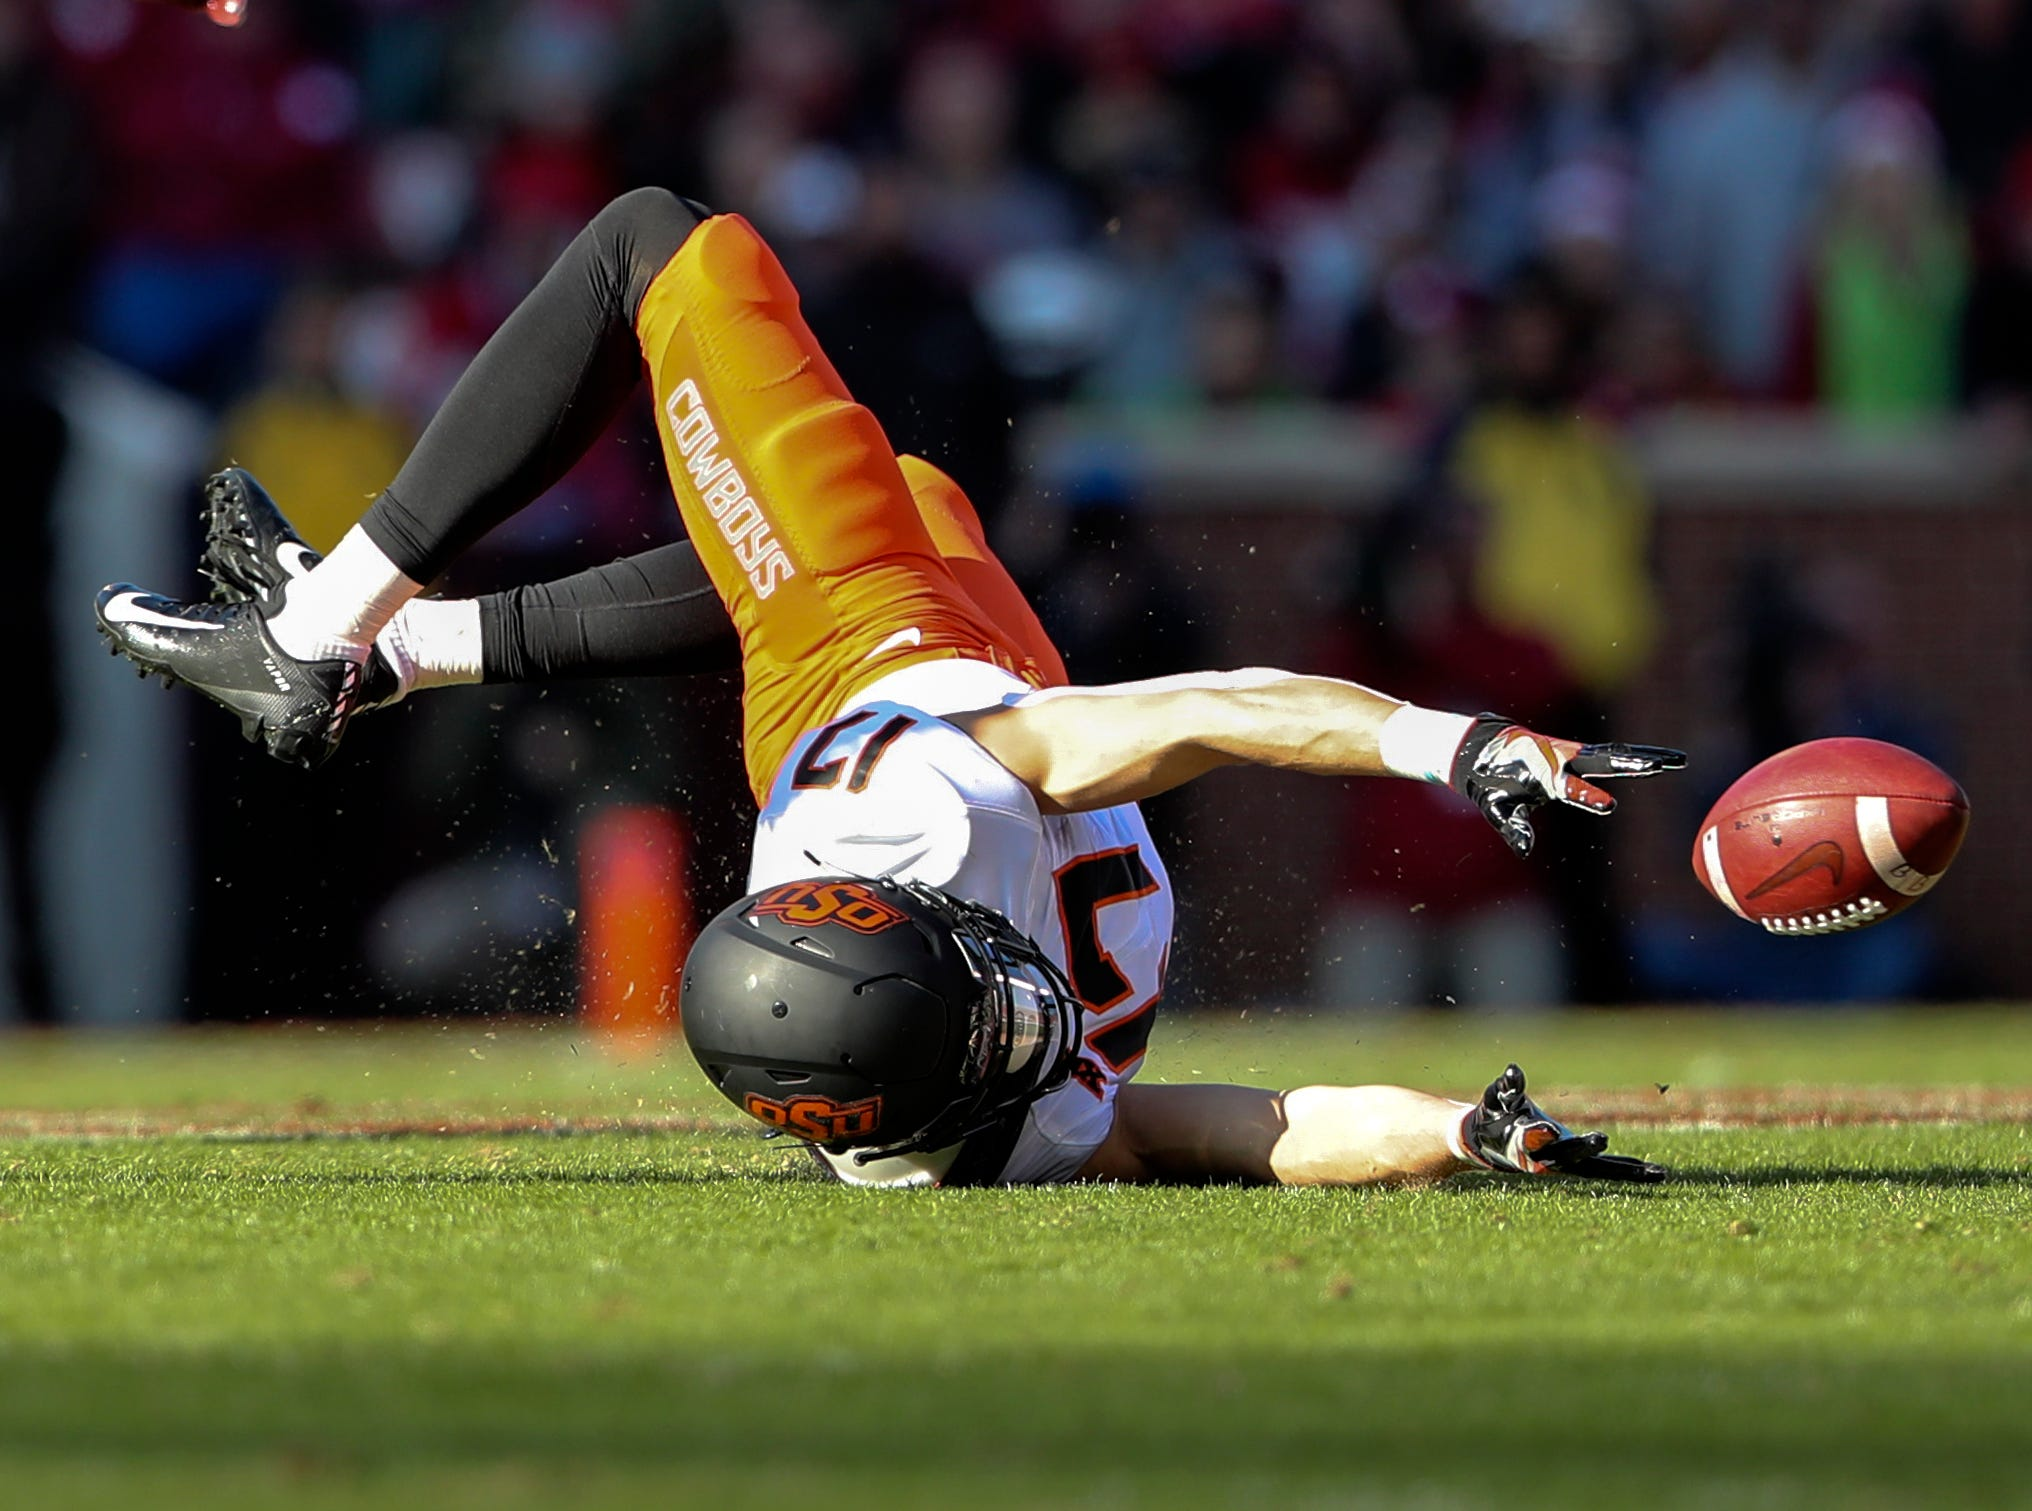 Oklahoma State Cowboys wide receiver Dillon Stoner (17) dives for but cannot make a catch during the first quarter against the Oklahoma Sooners at Gaylord Family-Oklahoma Memorial Stadium.